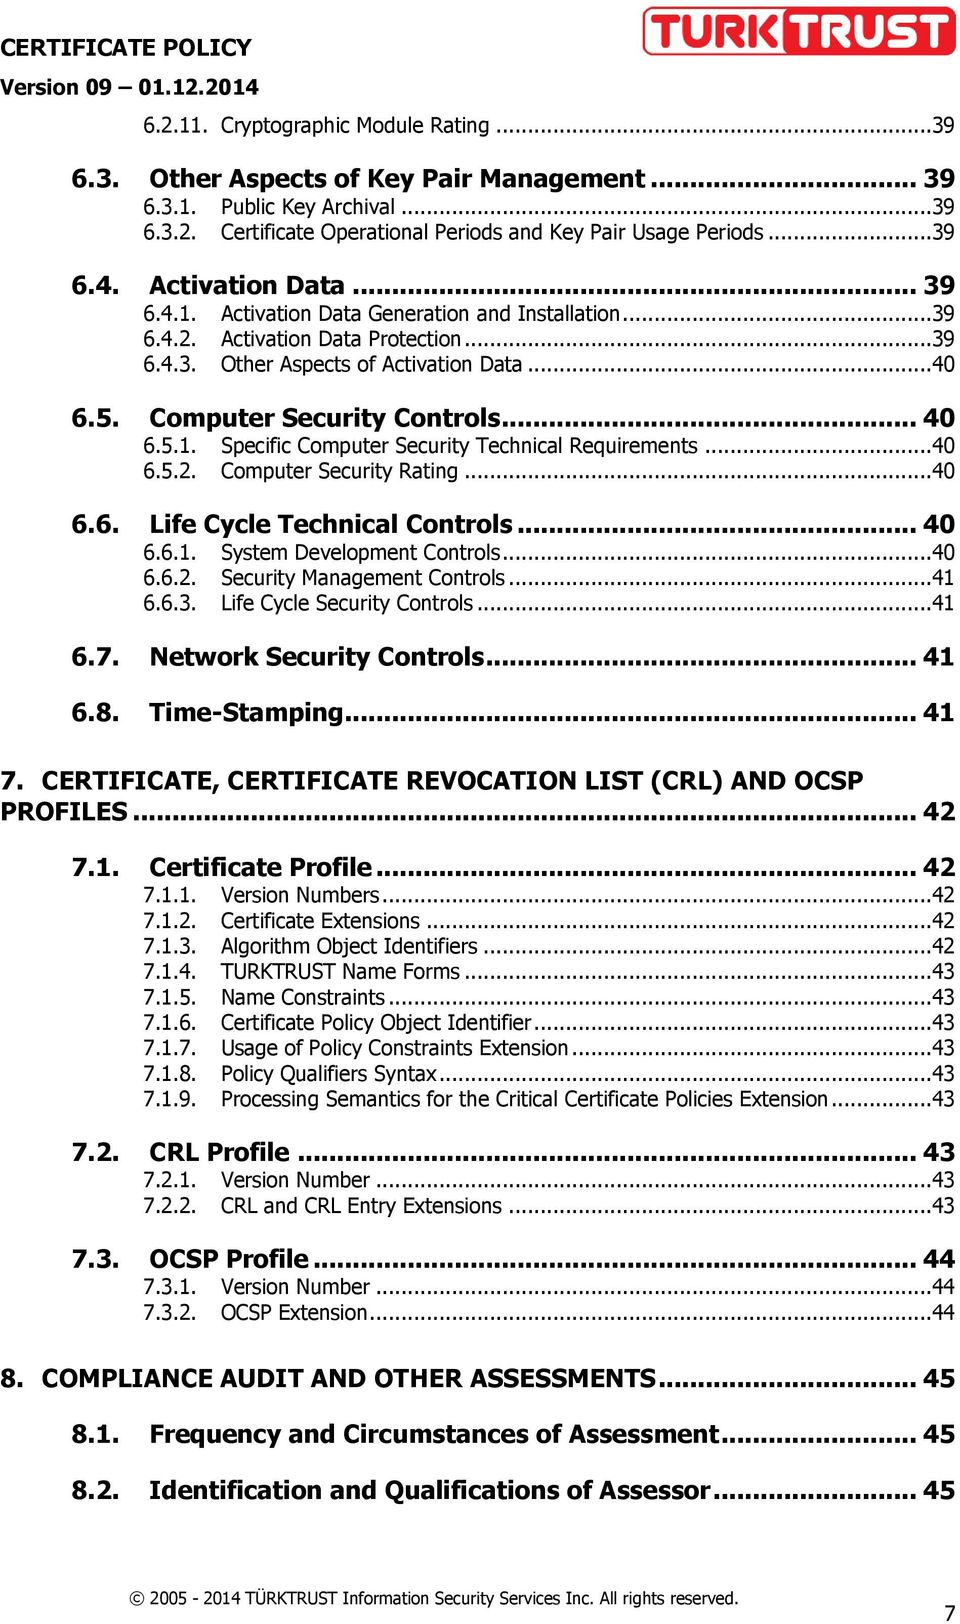 5.1. Specific Computer Security Technical Requirements...40 6.5.2. Computer Security Rating...40 6.6. Life Cycle Technical Controls... 40 6.6.1. System Development Controls...40 6.6.2. Security Management Controls.